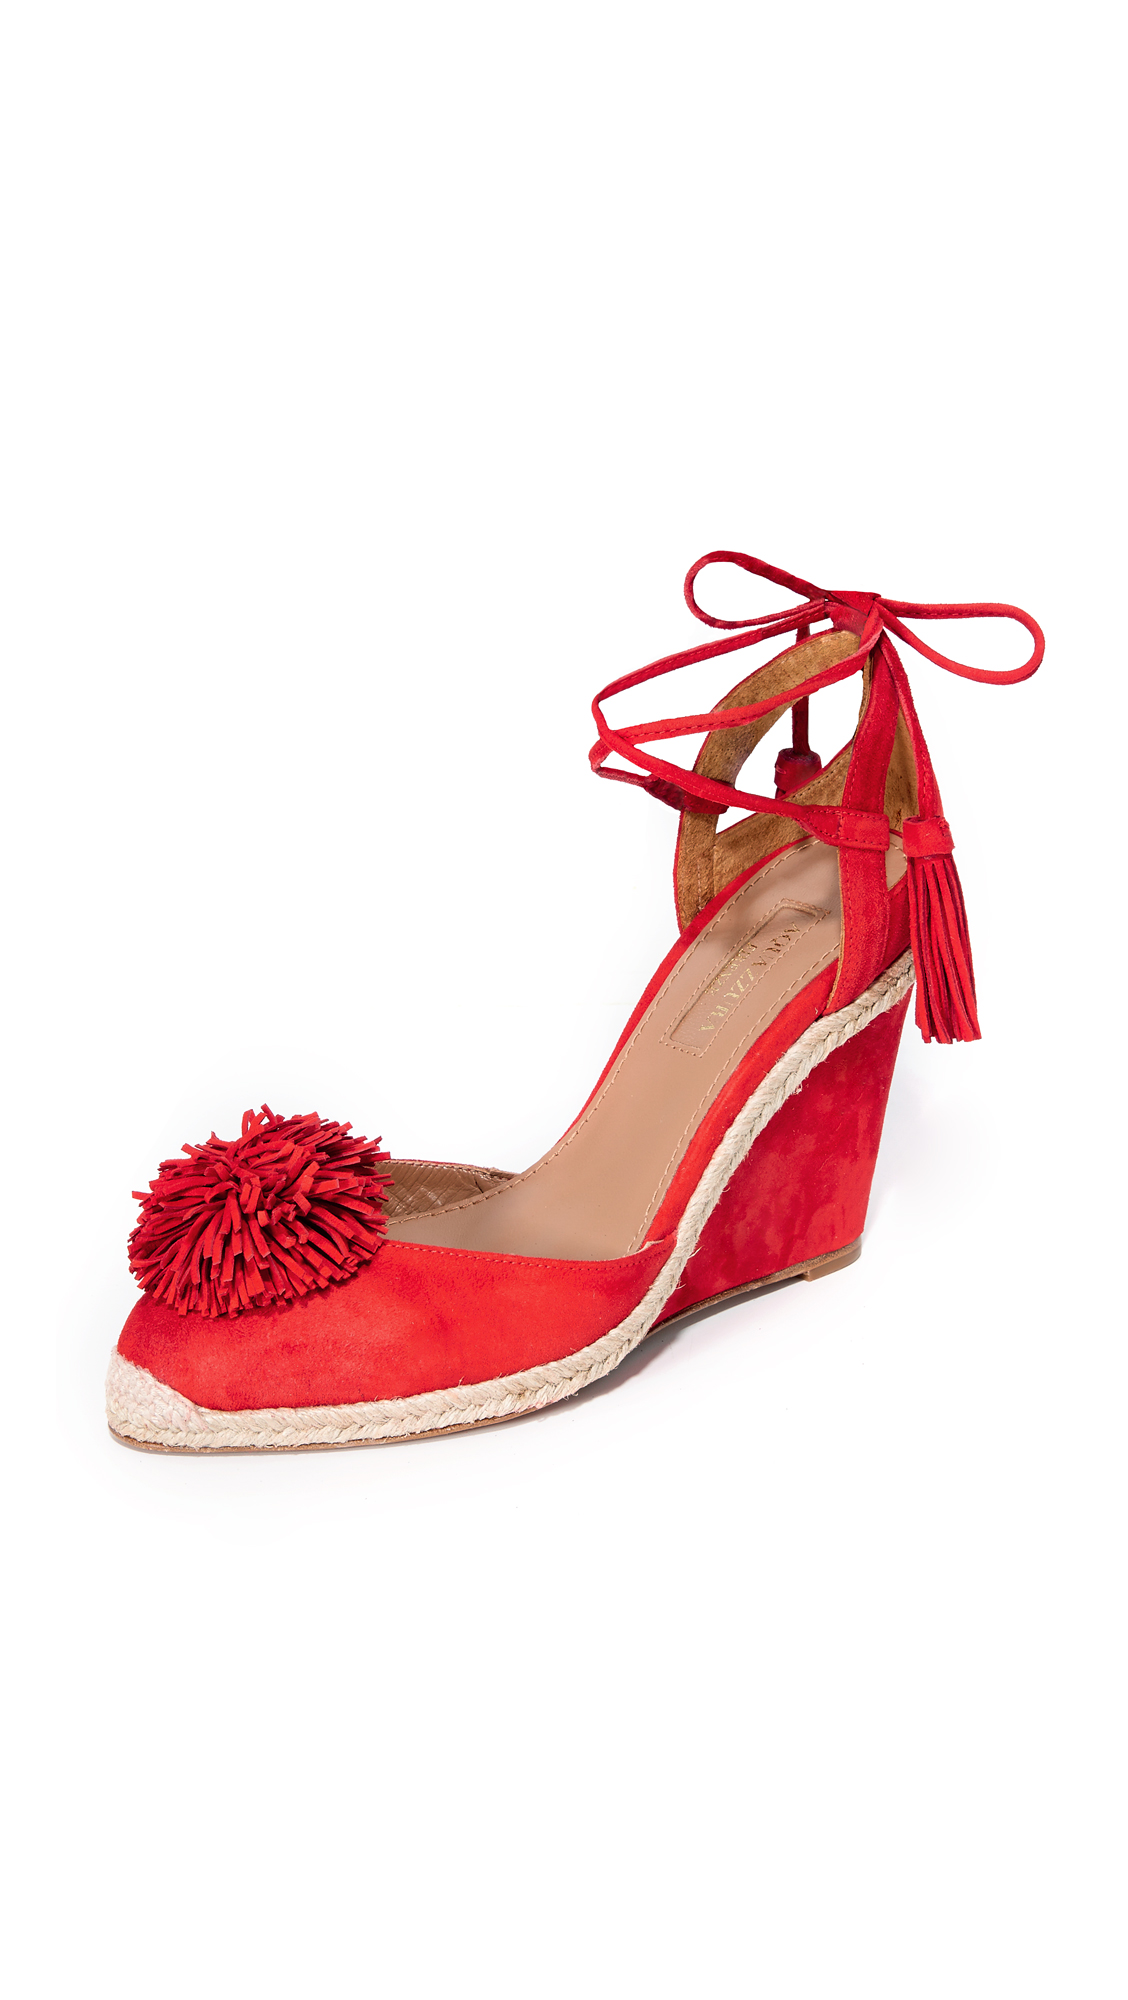 Aquazzura Sunshine Wedge Espadrilles - Lipstick